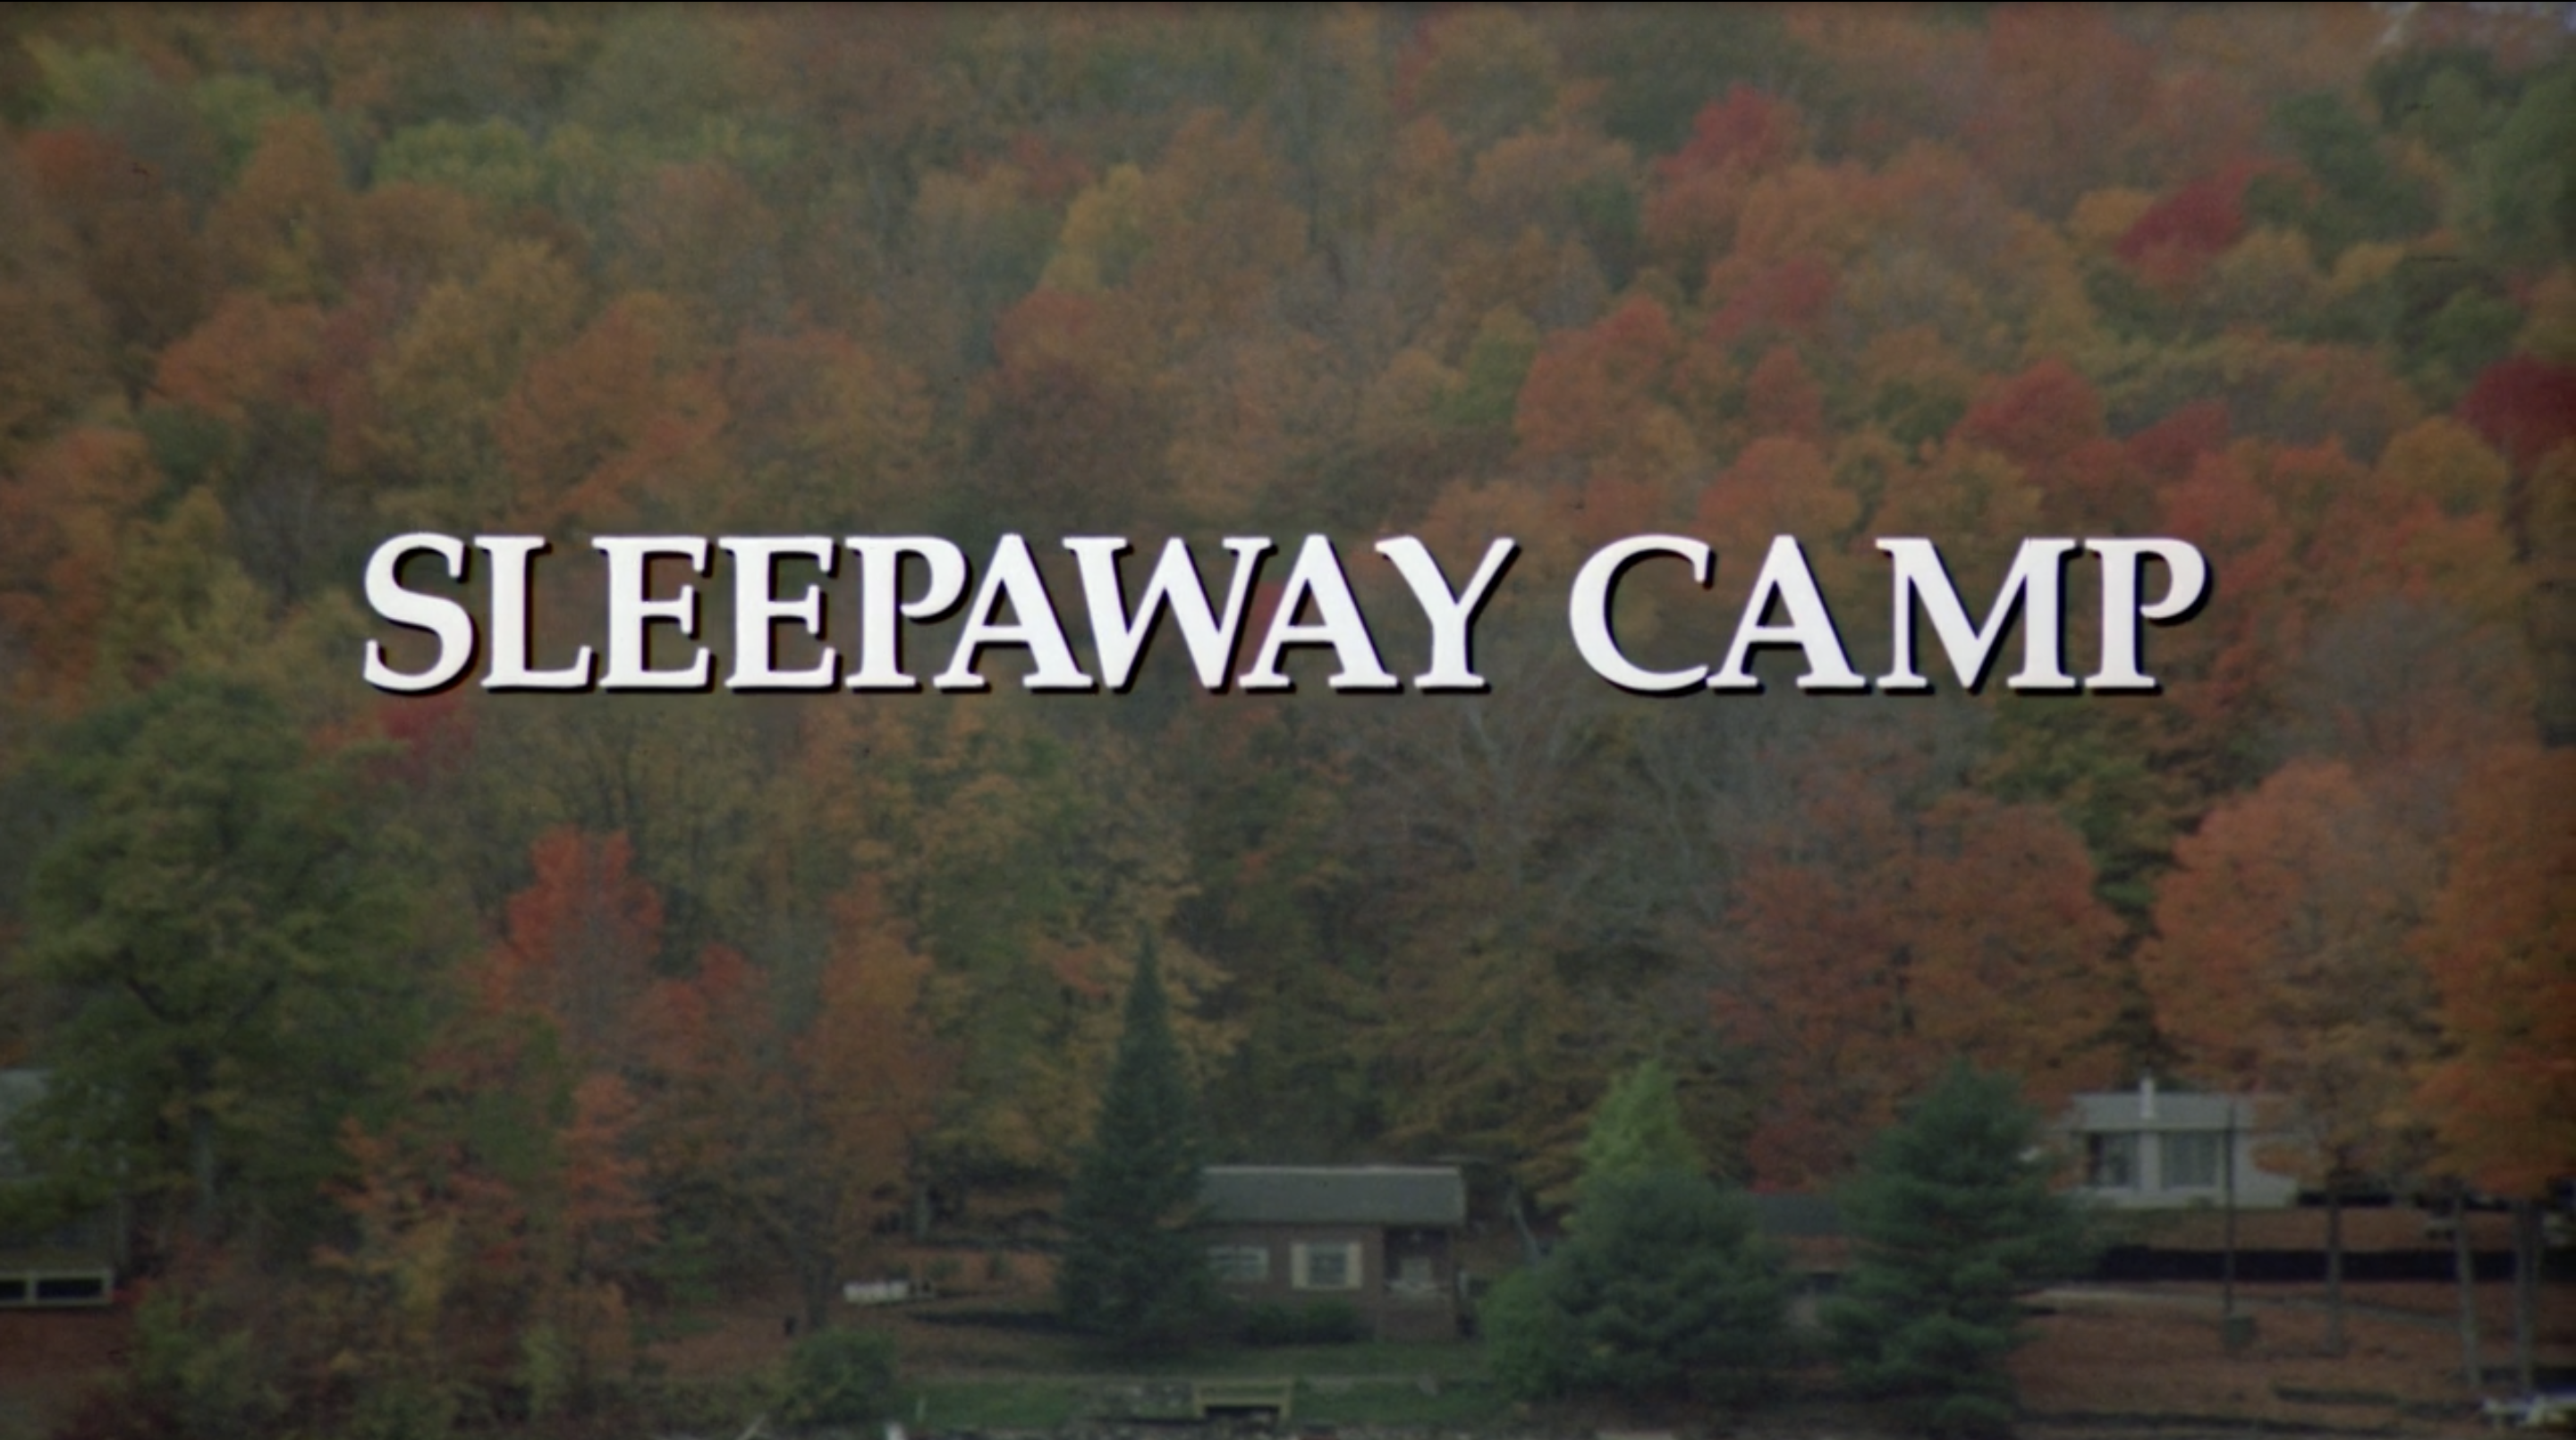 Opening image of the film Sleepaway Camp